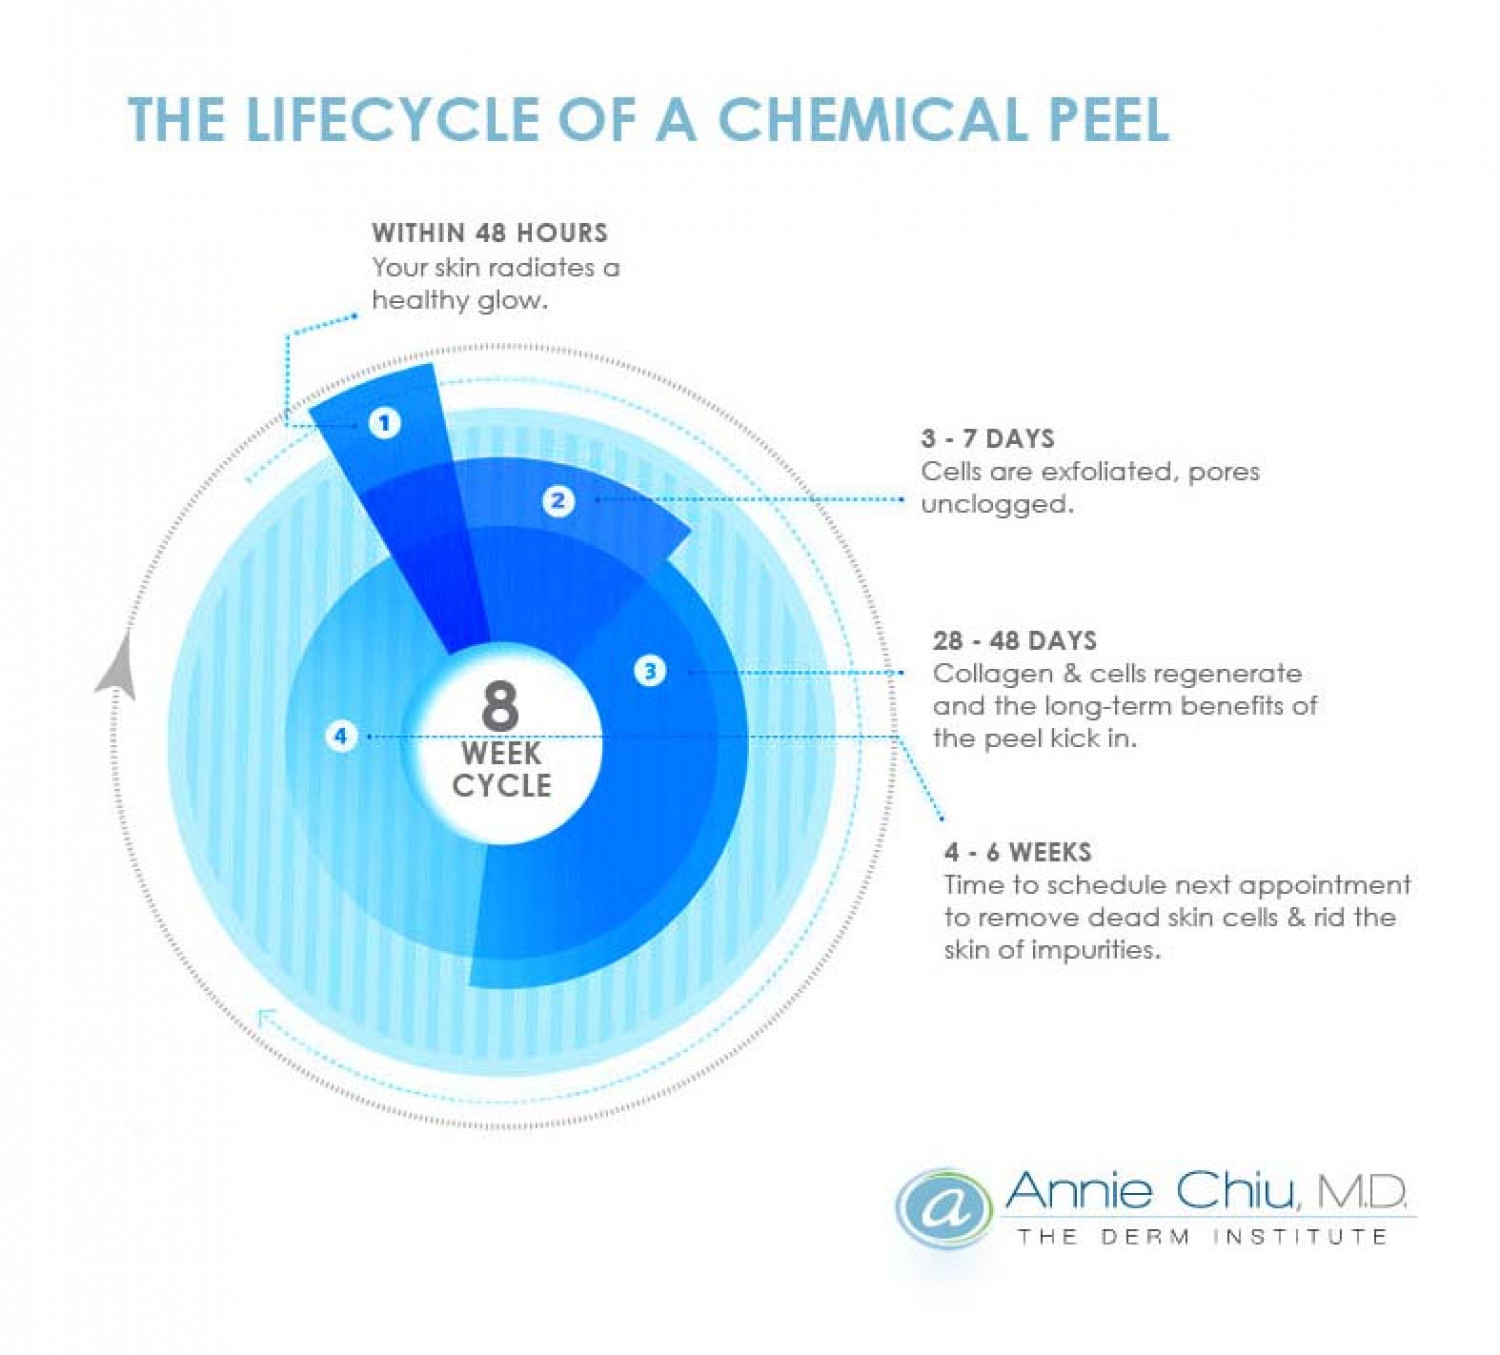 The Lifecycle of a Chemical Peel  Infographic